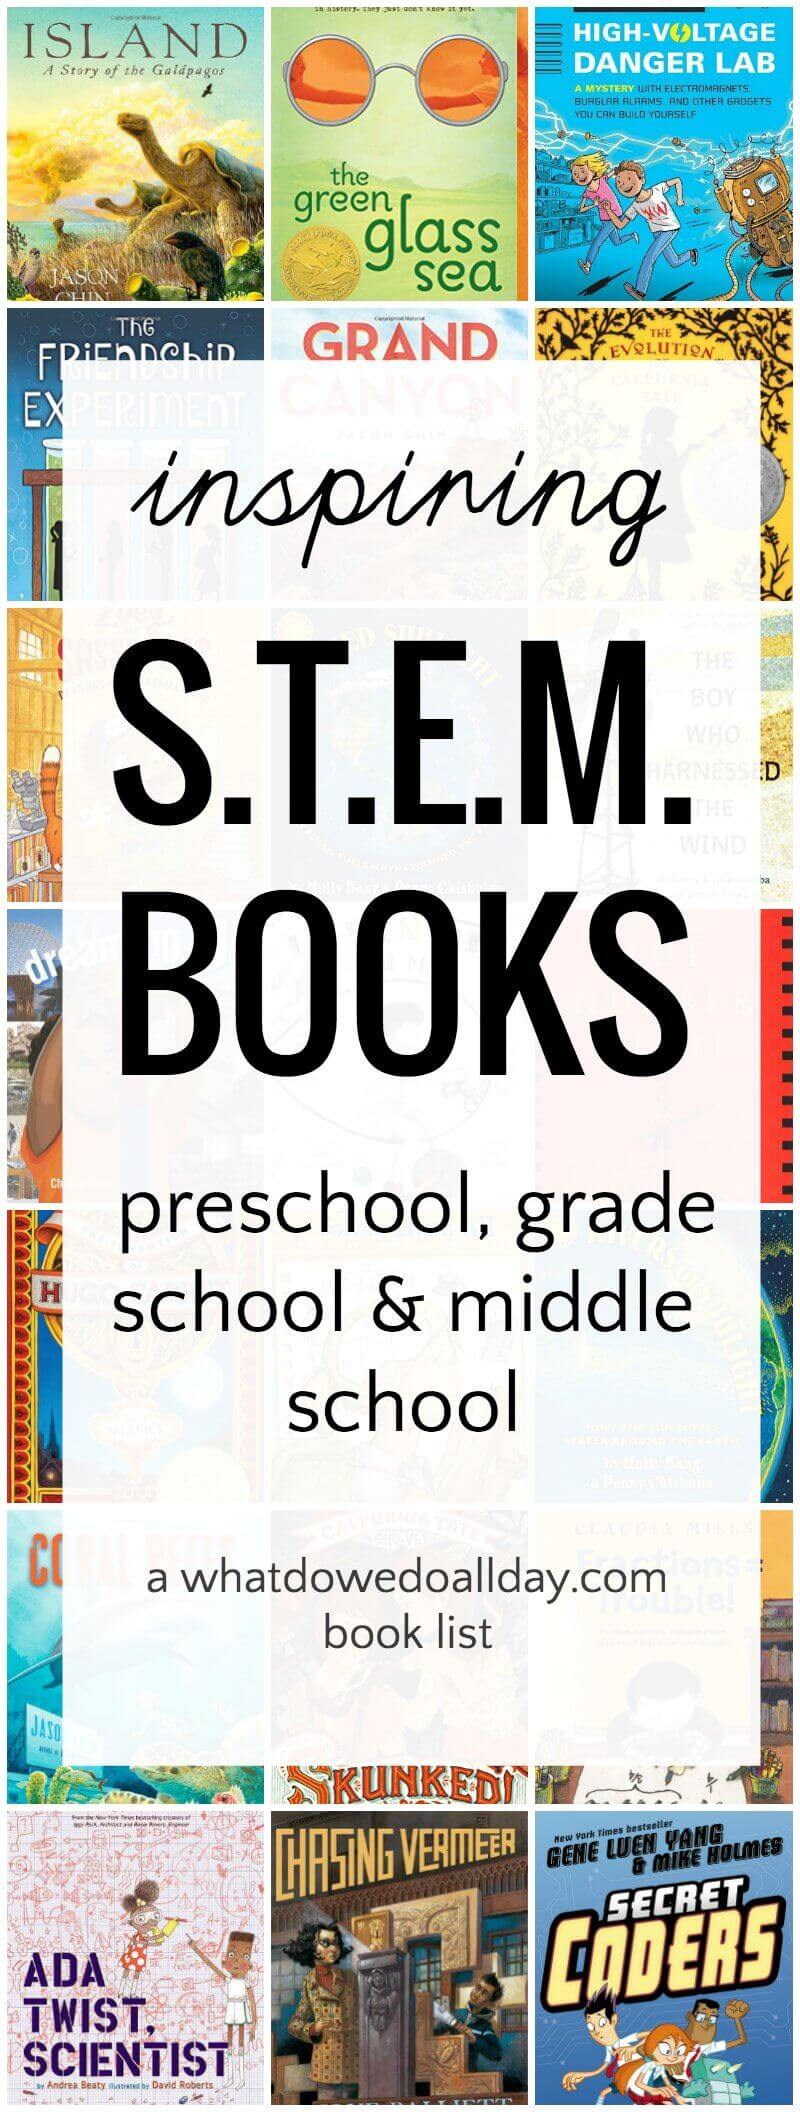 STEM books for kids for all ages. Great for a STEAM and STEM curriculum.